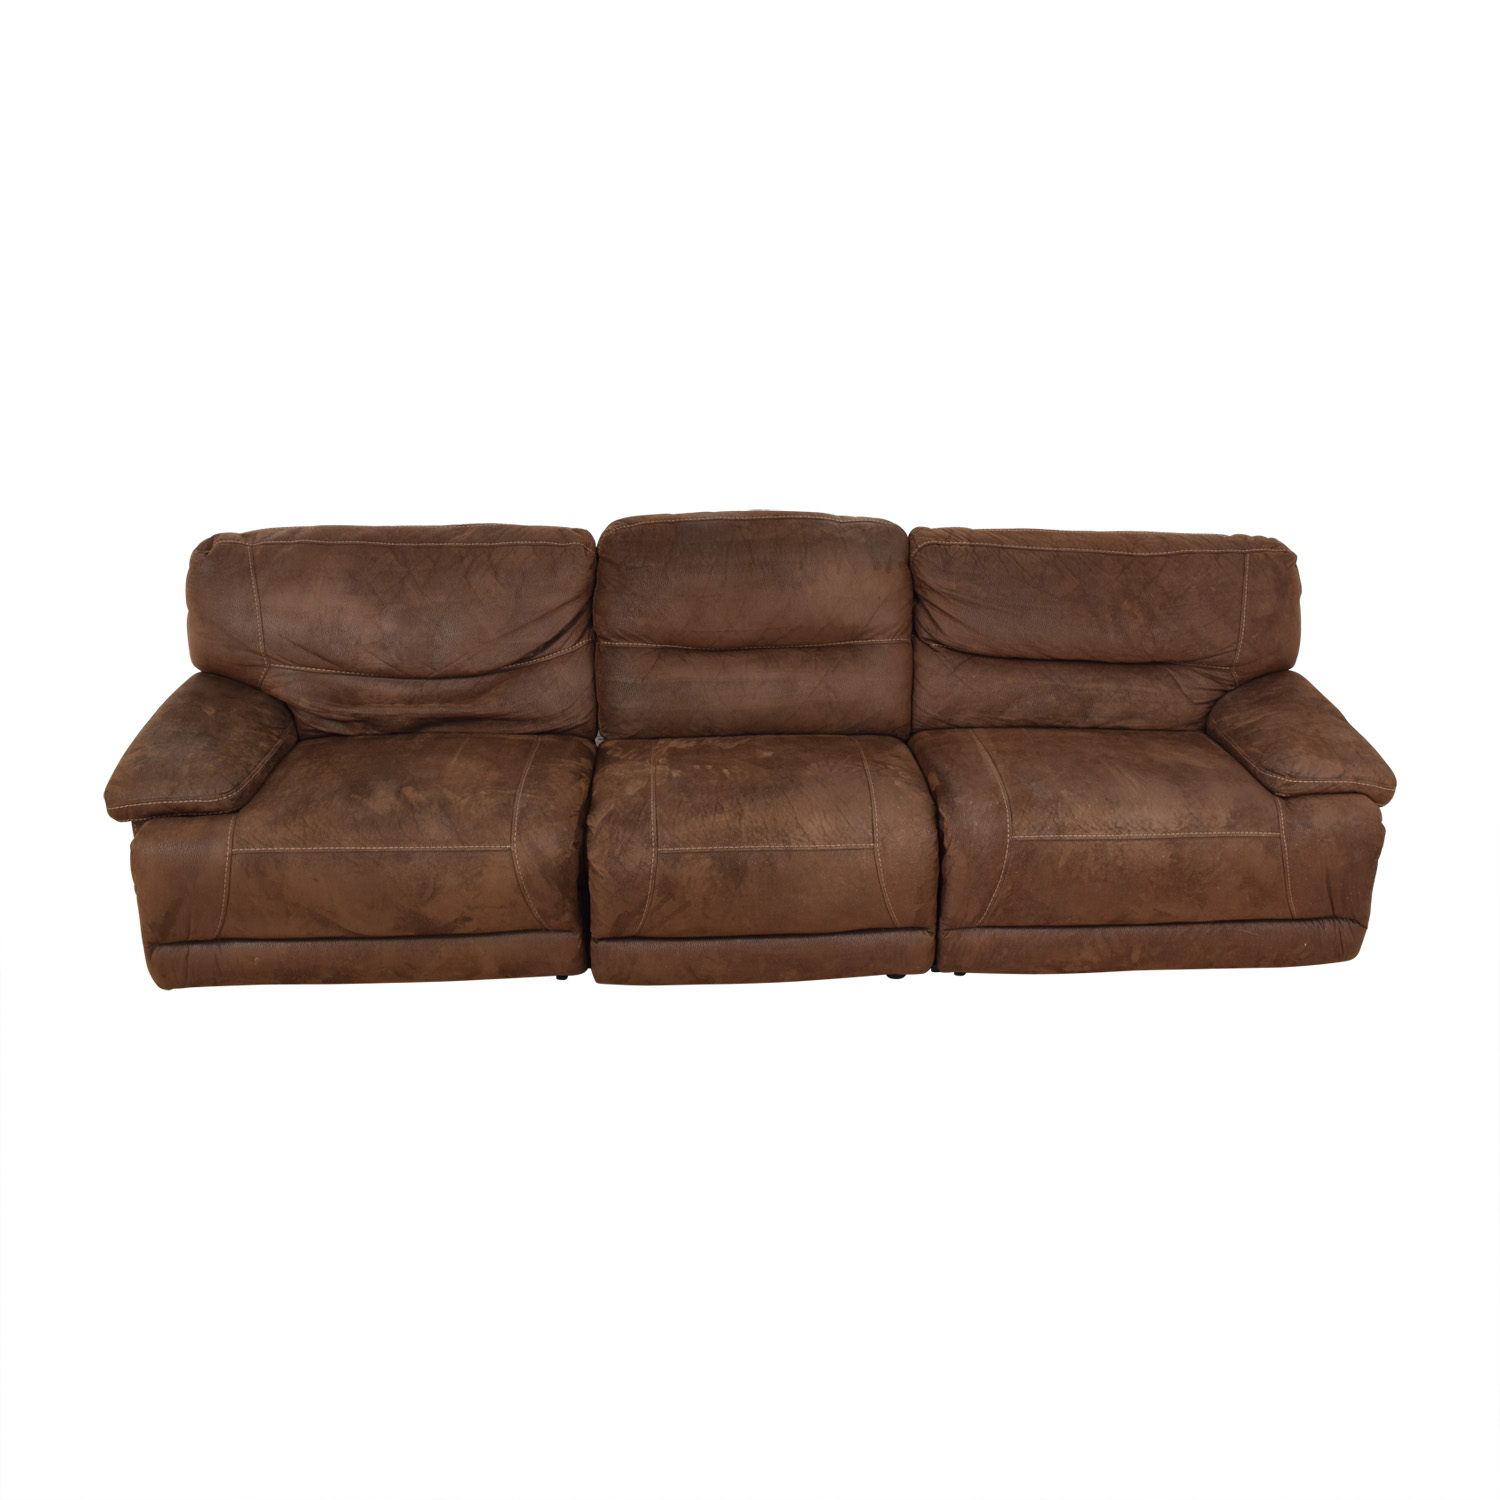 Bob's Discount Furniture Bob's Discount Furniture Reclining Sectional for sale